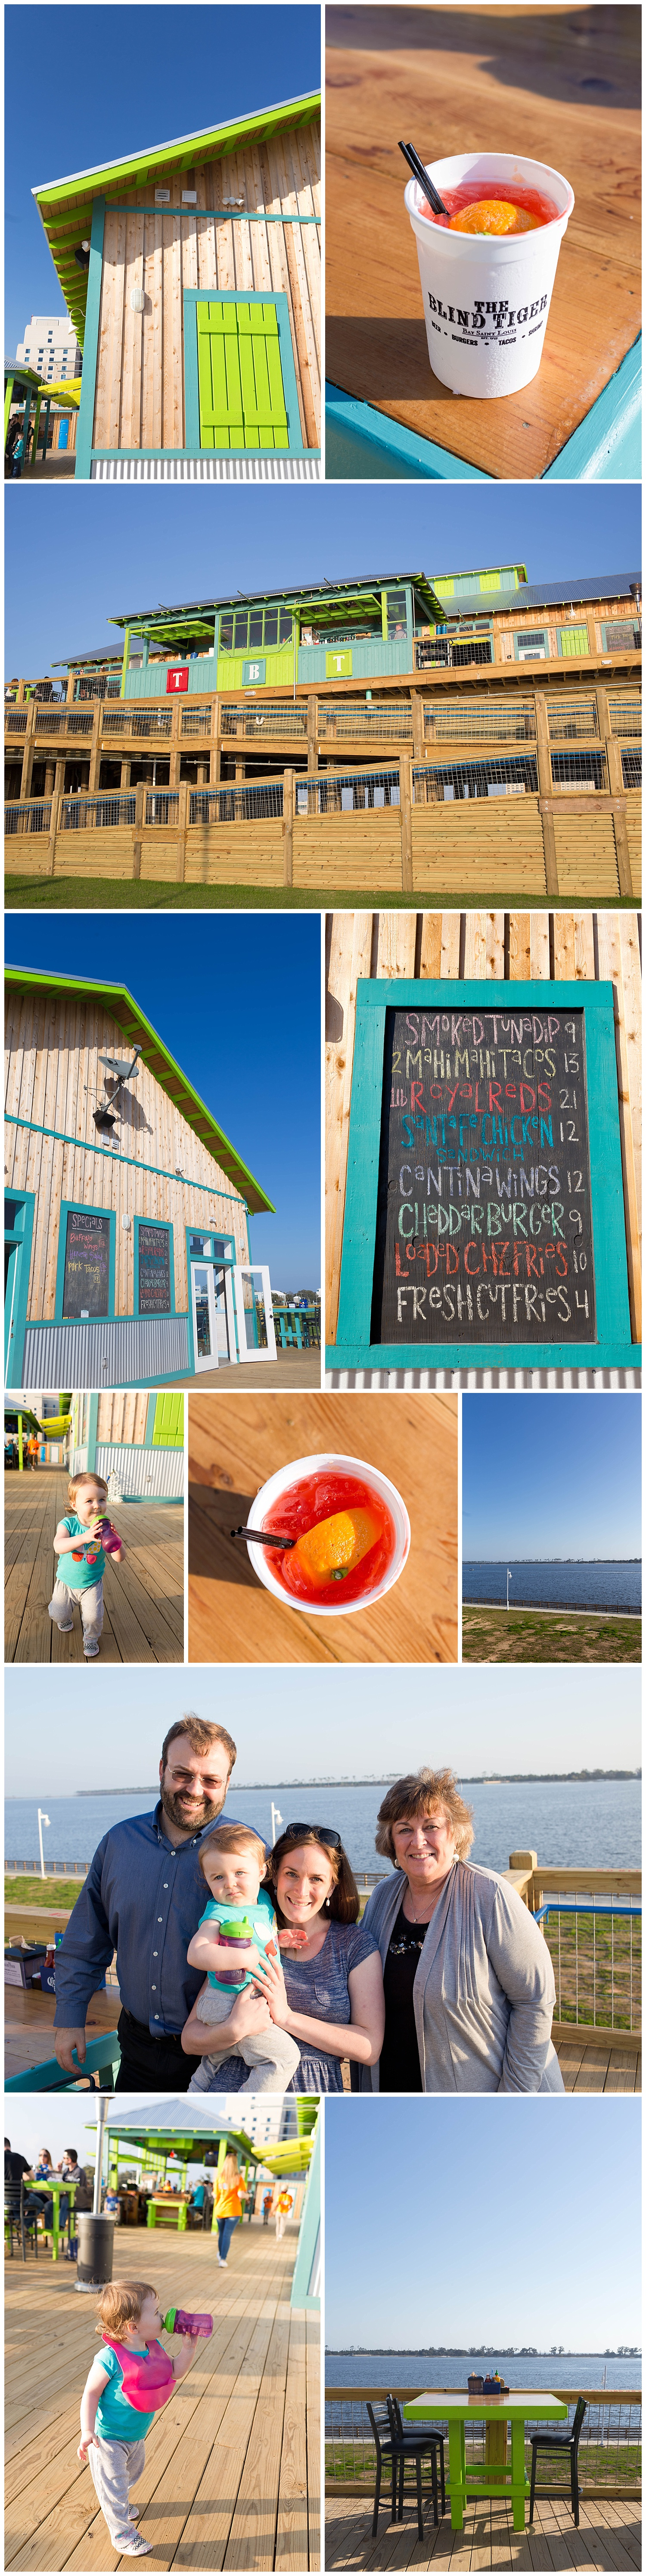 The Blind Tiger restaurant in Biloxi, Mississippi (Uninvented Colors Photography)